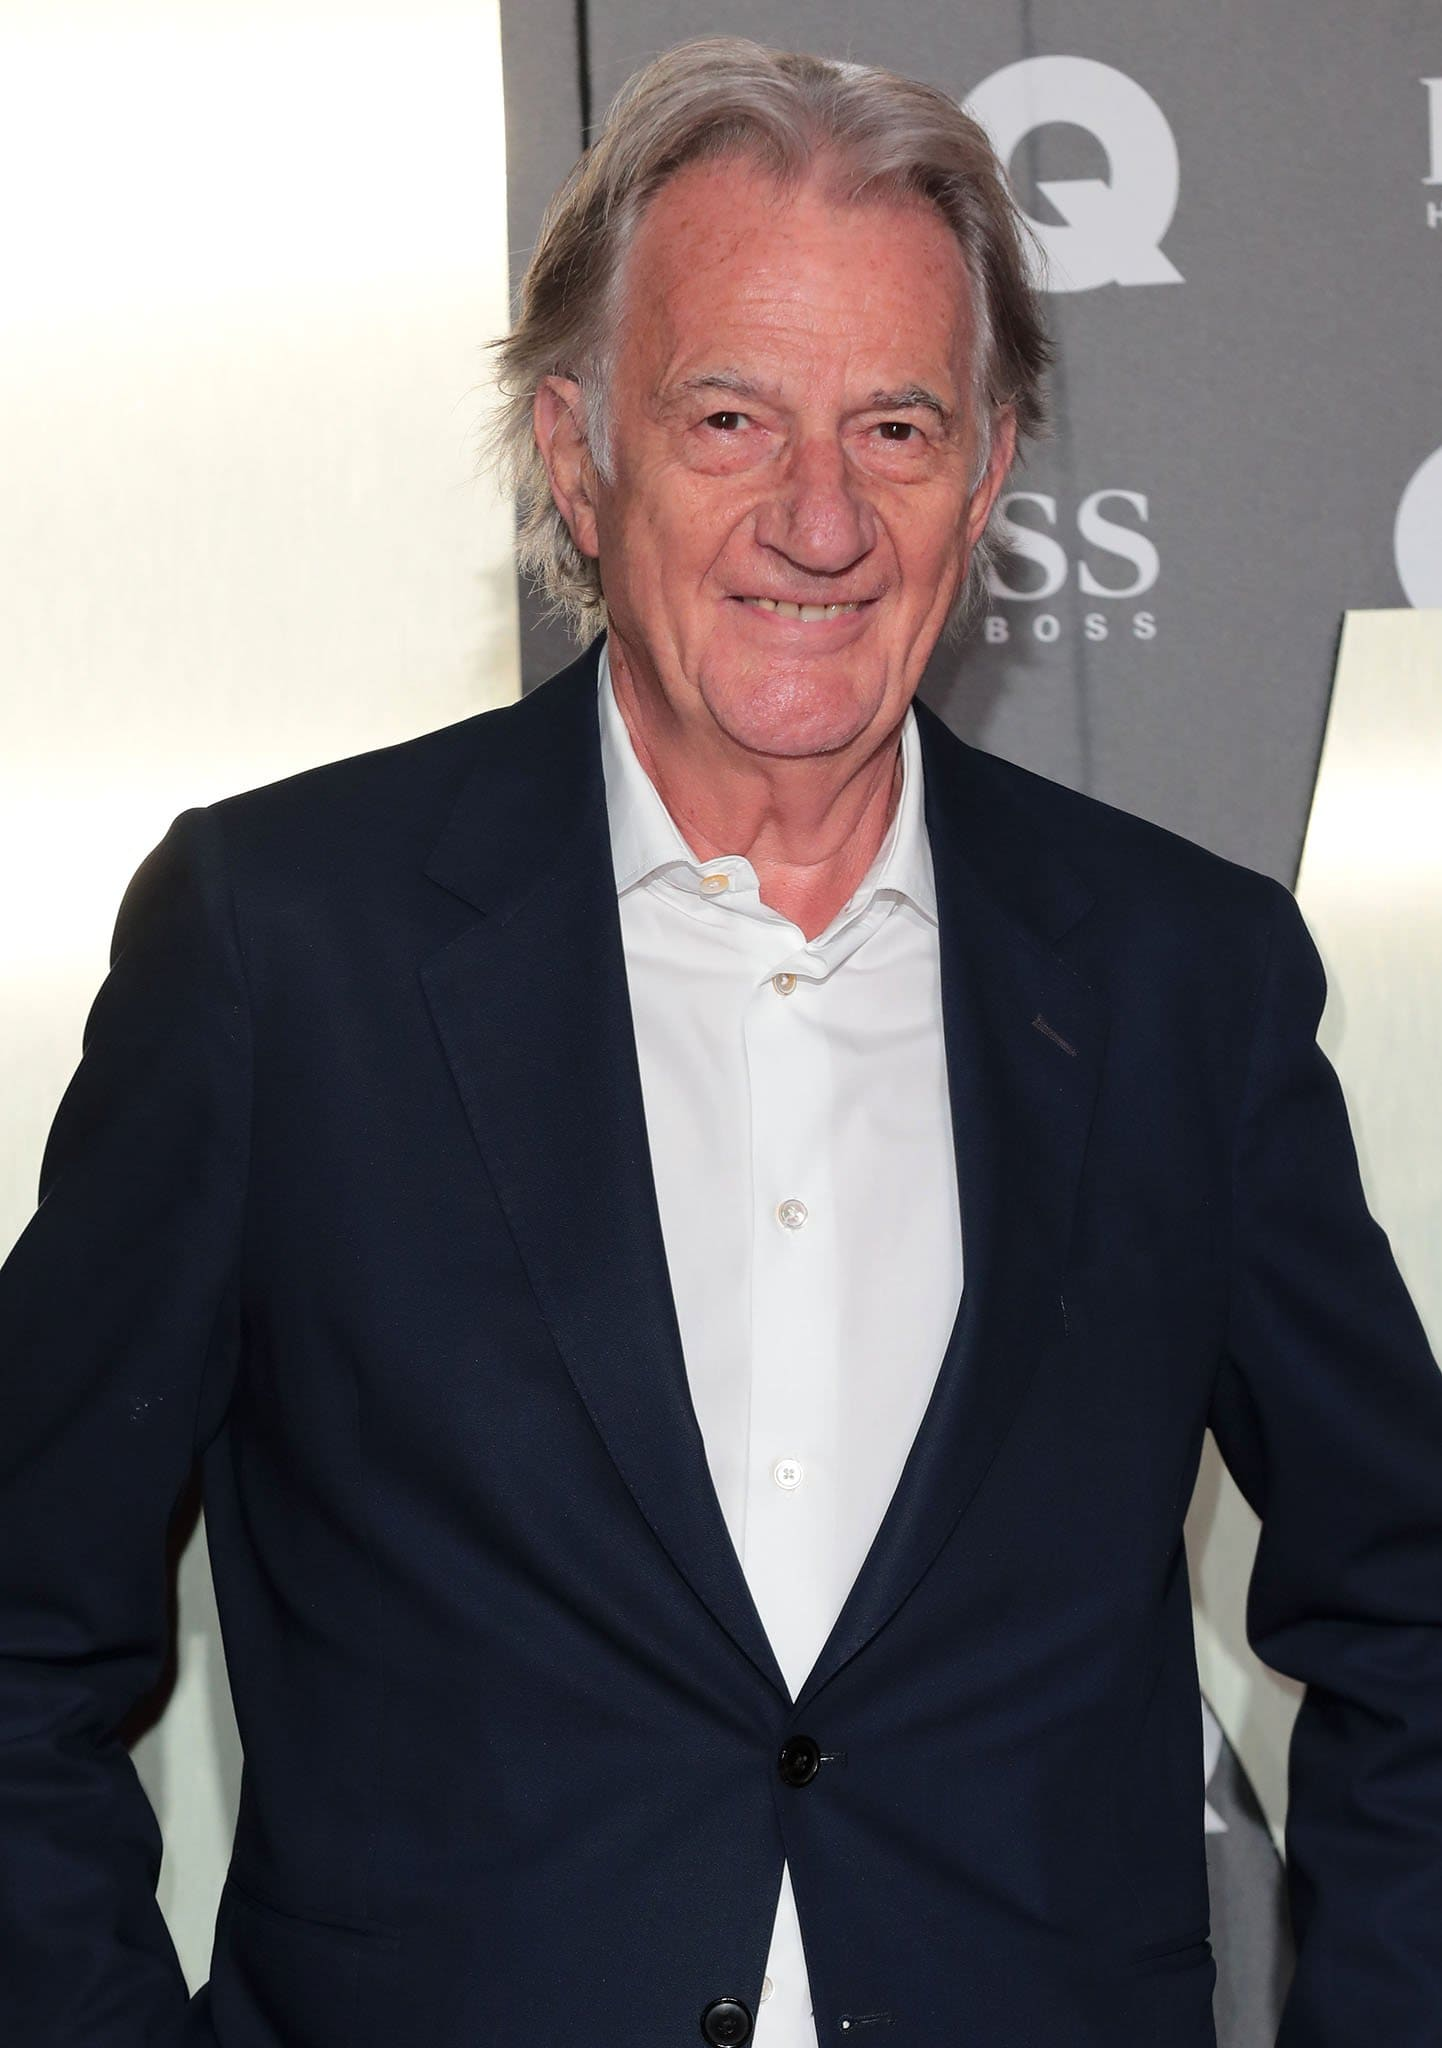 Paul Smith at the 2019 GQ Men of the Year Awards in London on September 3, 2019